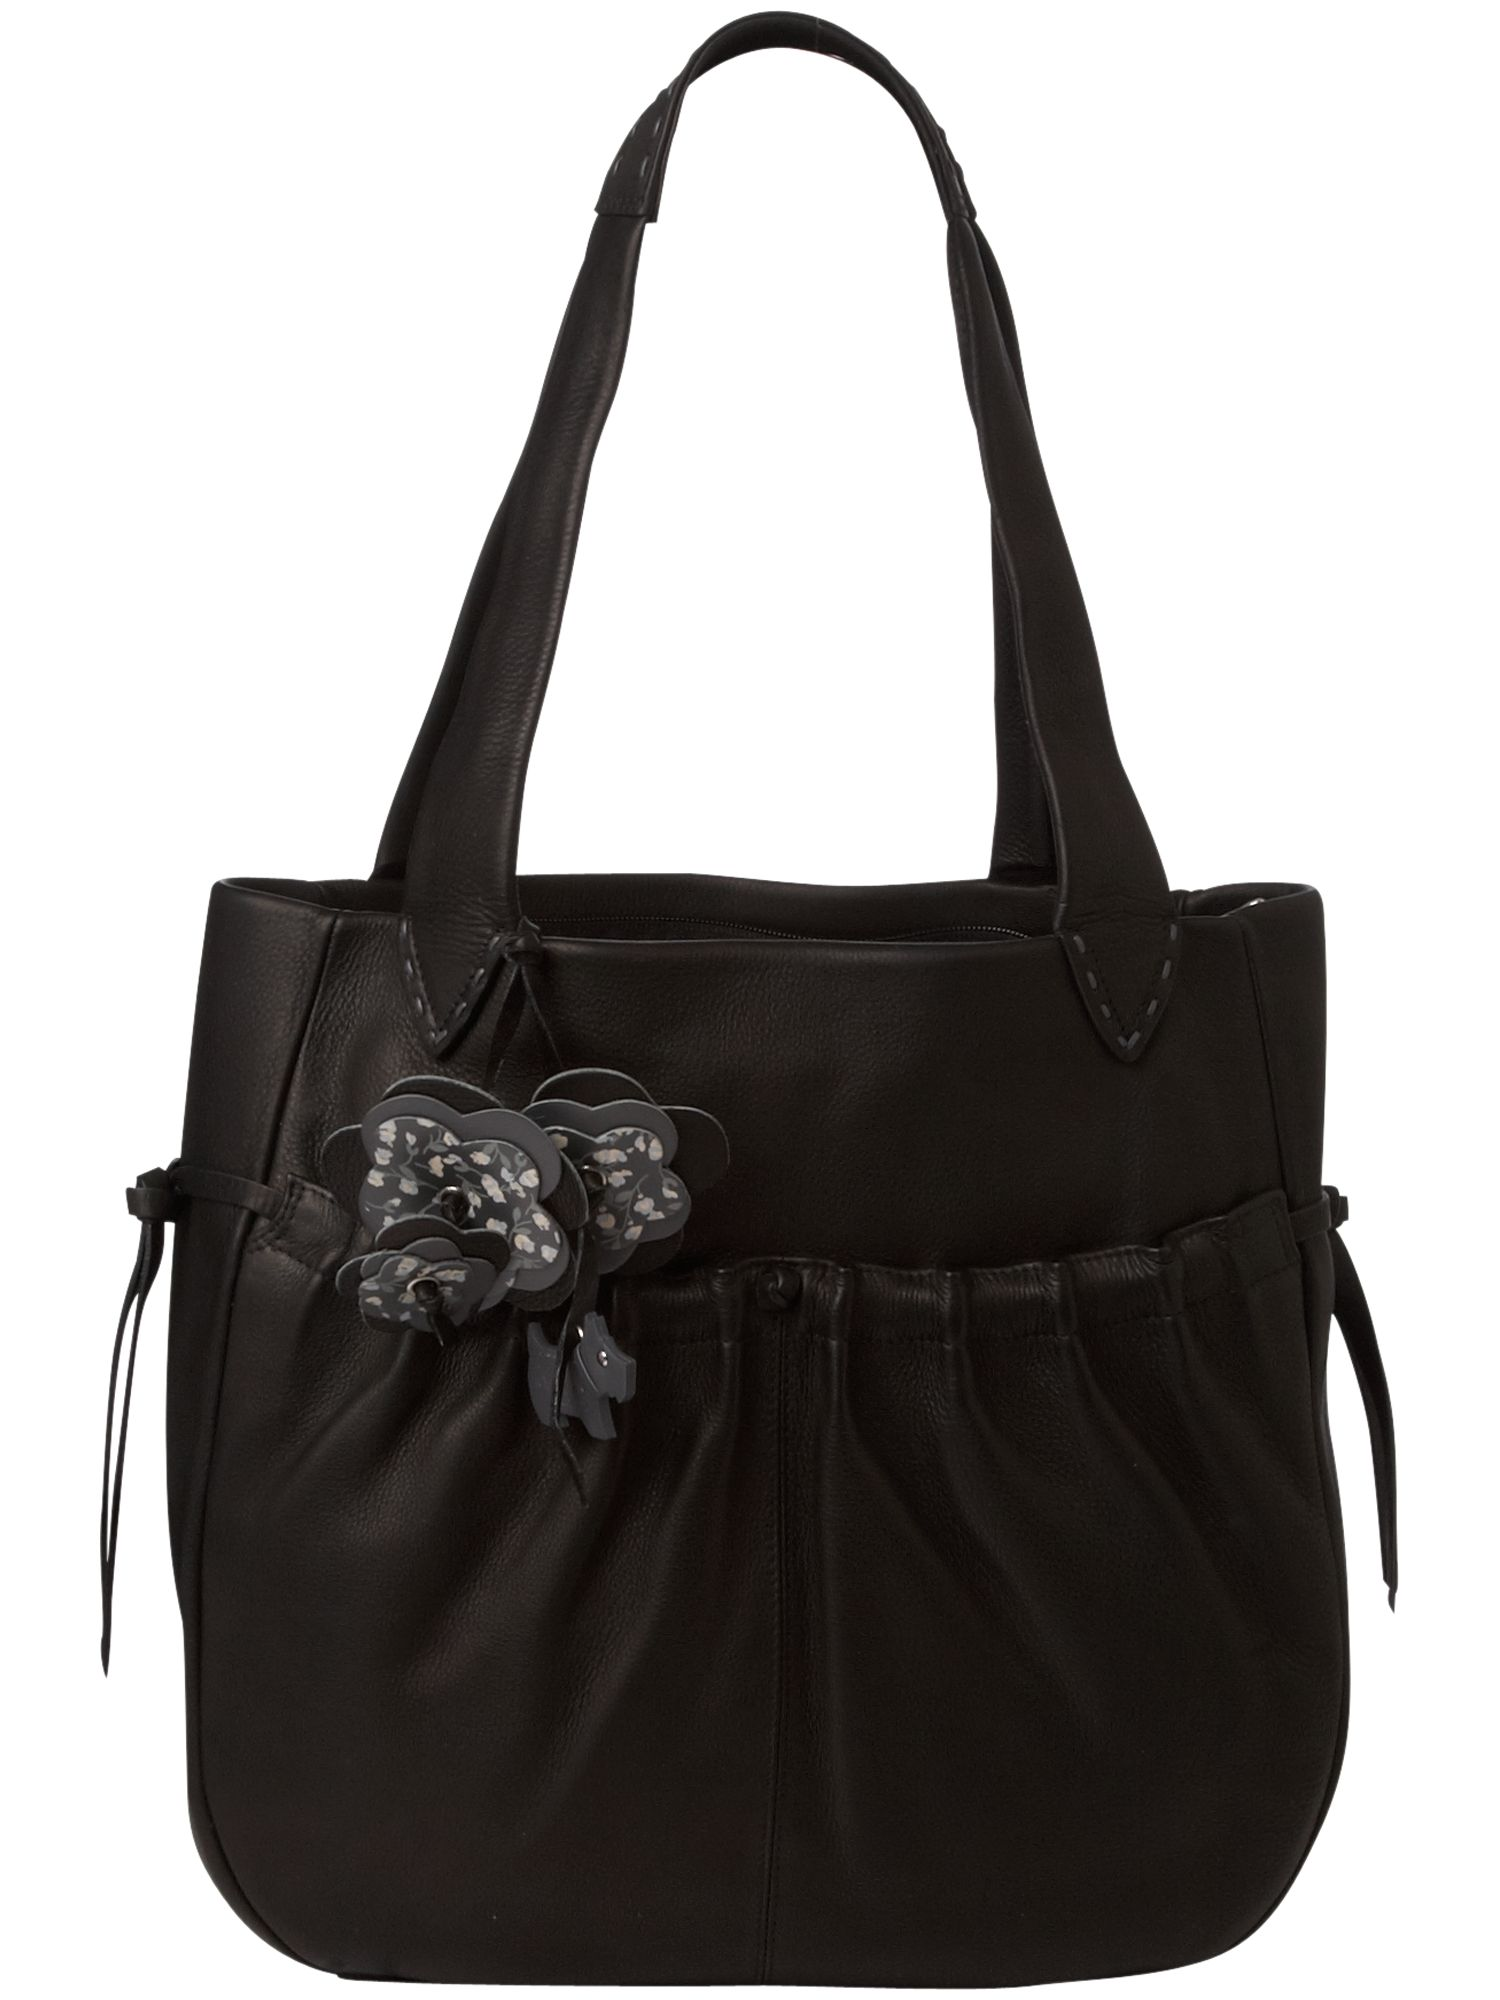 Radley Charleston Shoulder Tote Bag product image